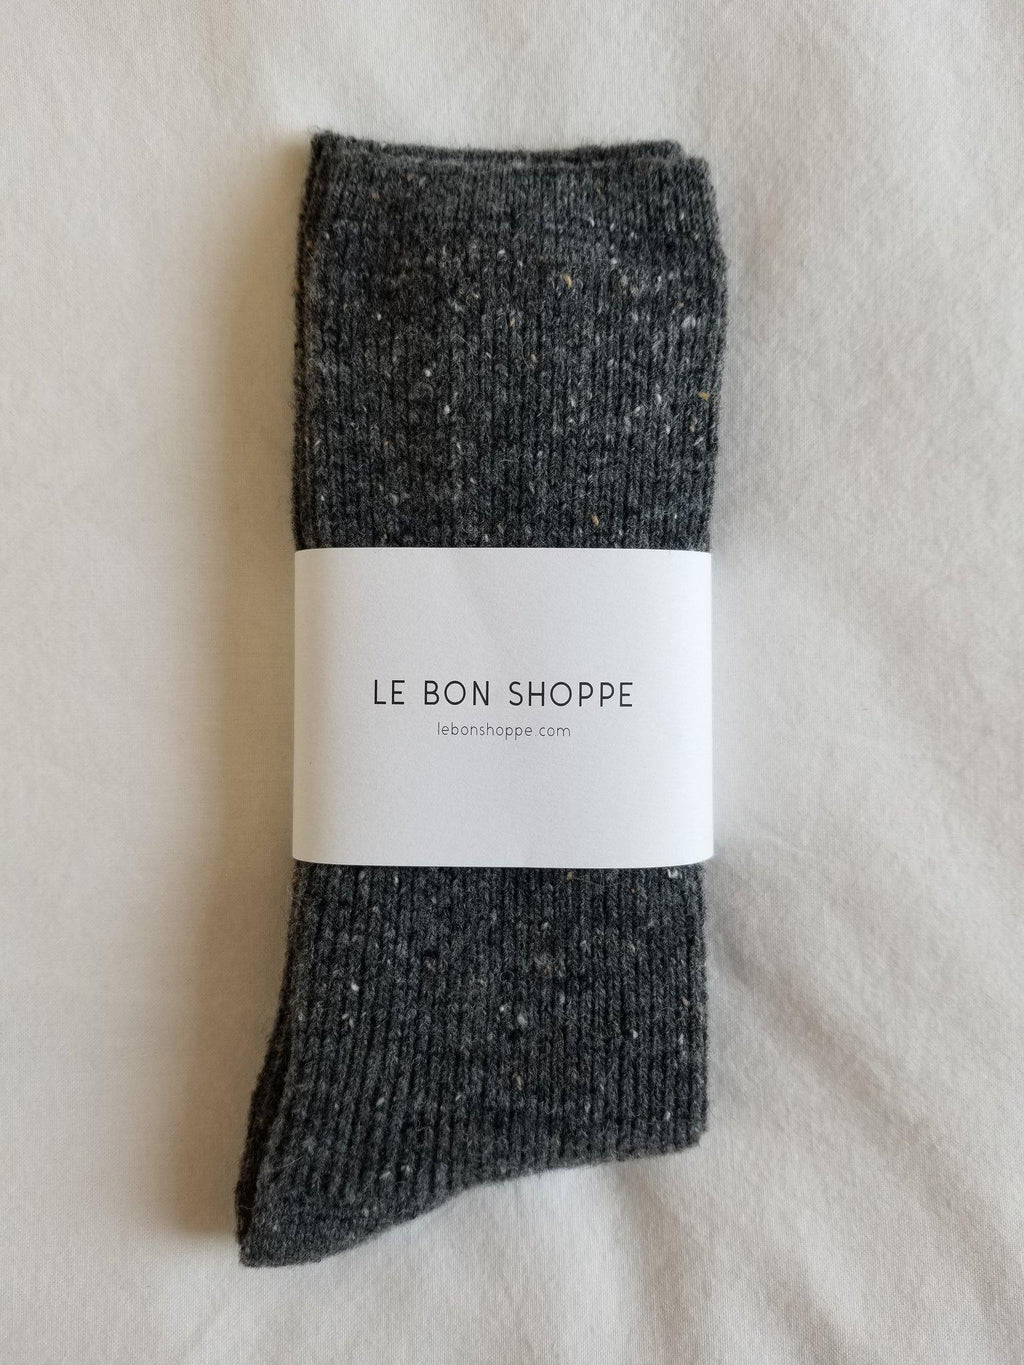 Le Bon Shoppe Snow Socks - Charcoal - Vincent Park